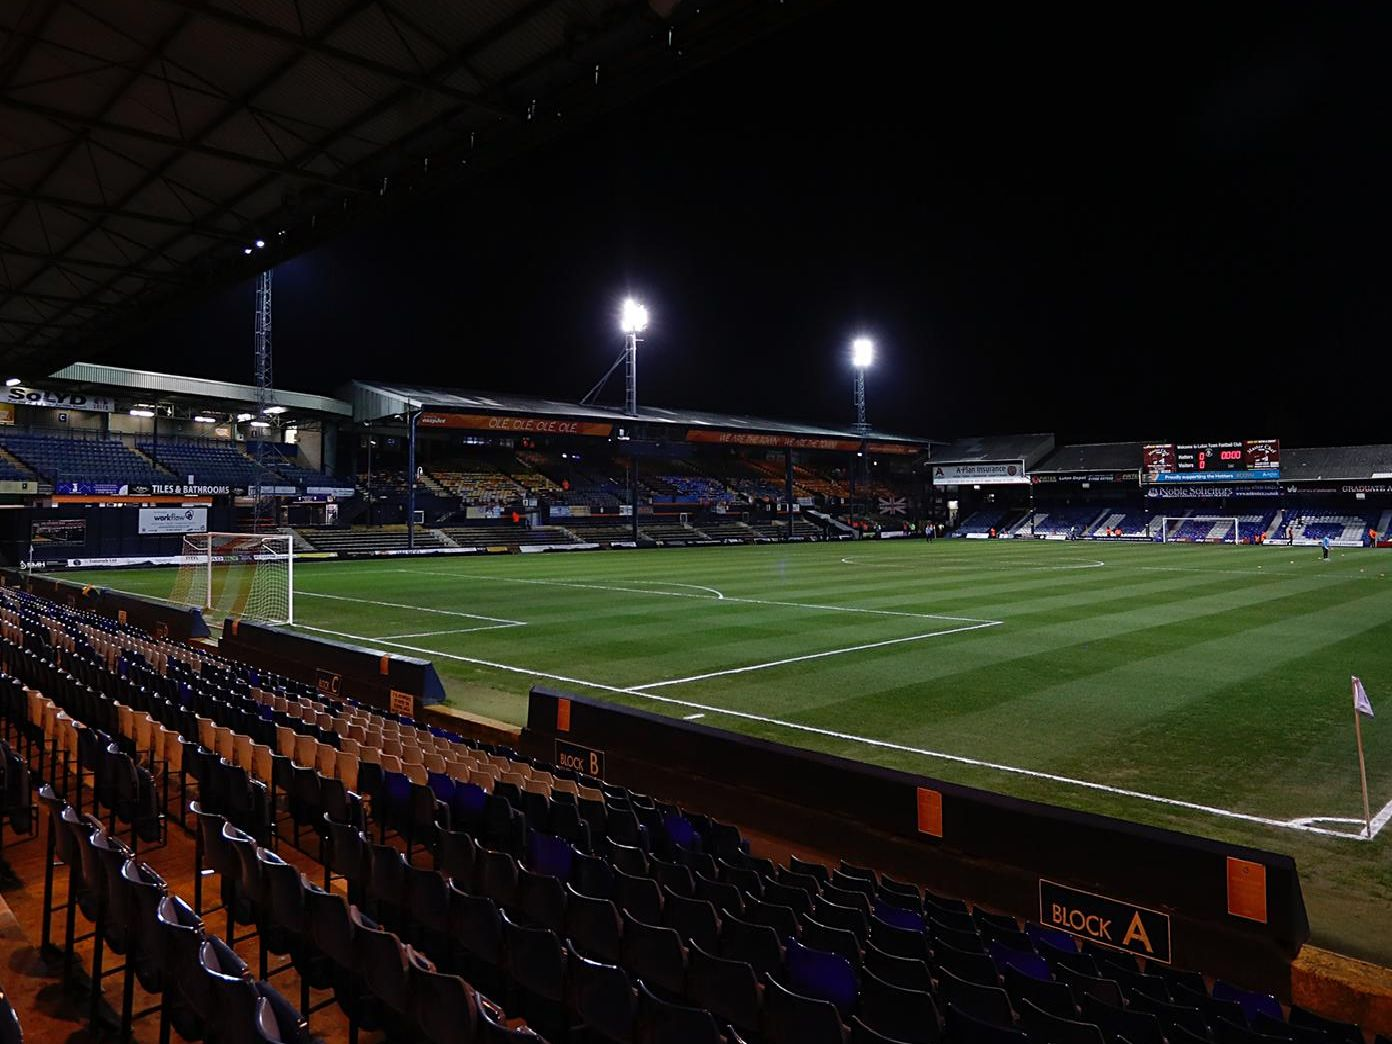 Luton Town have made a number of signings in the previous January transfer windows